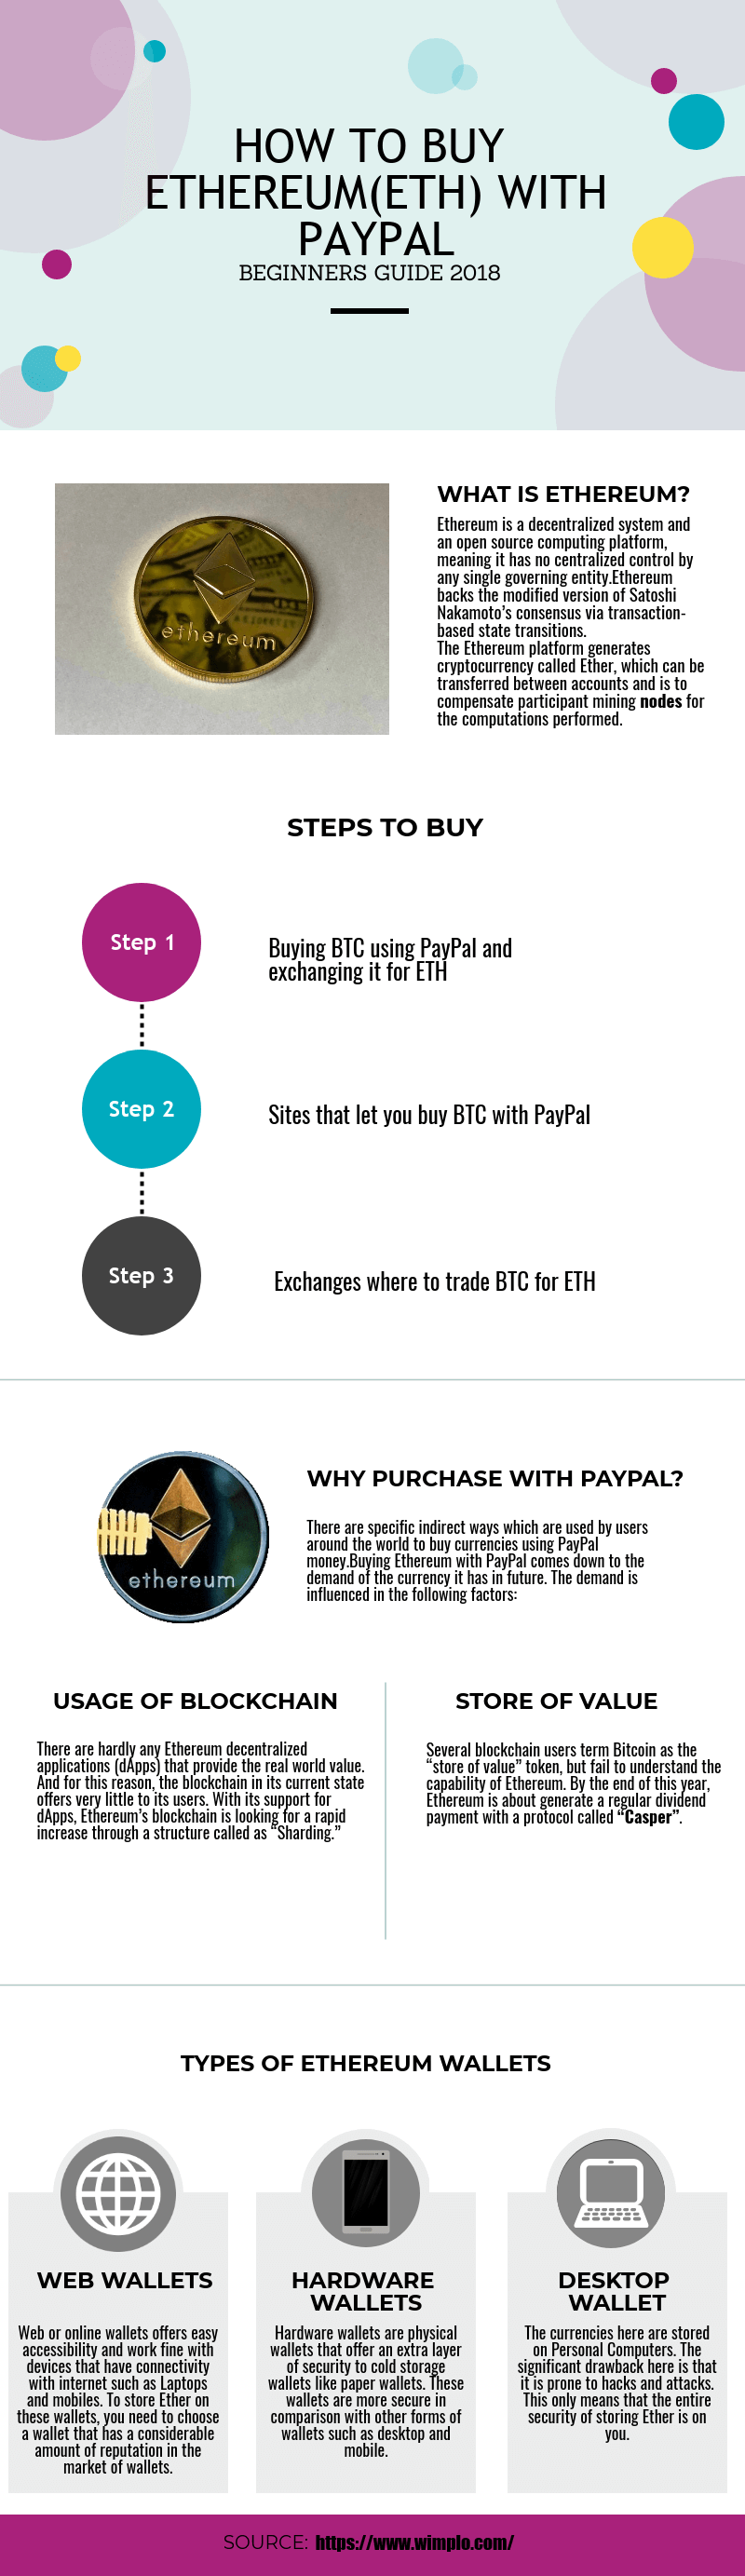 How to buy ethereum using paypal infographic